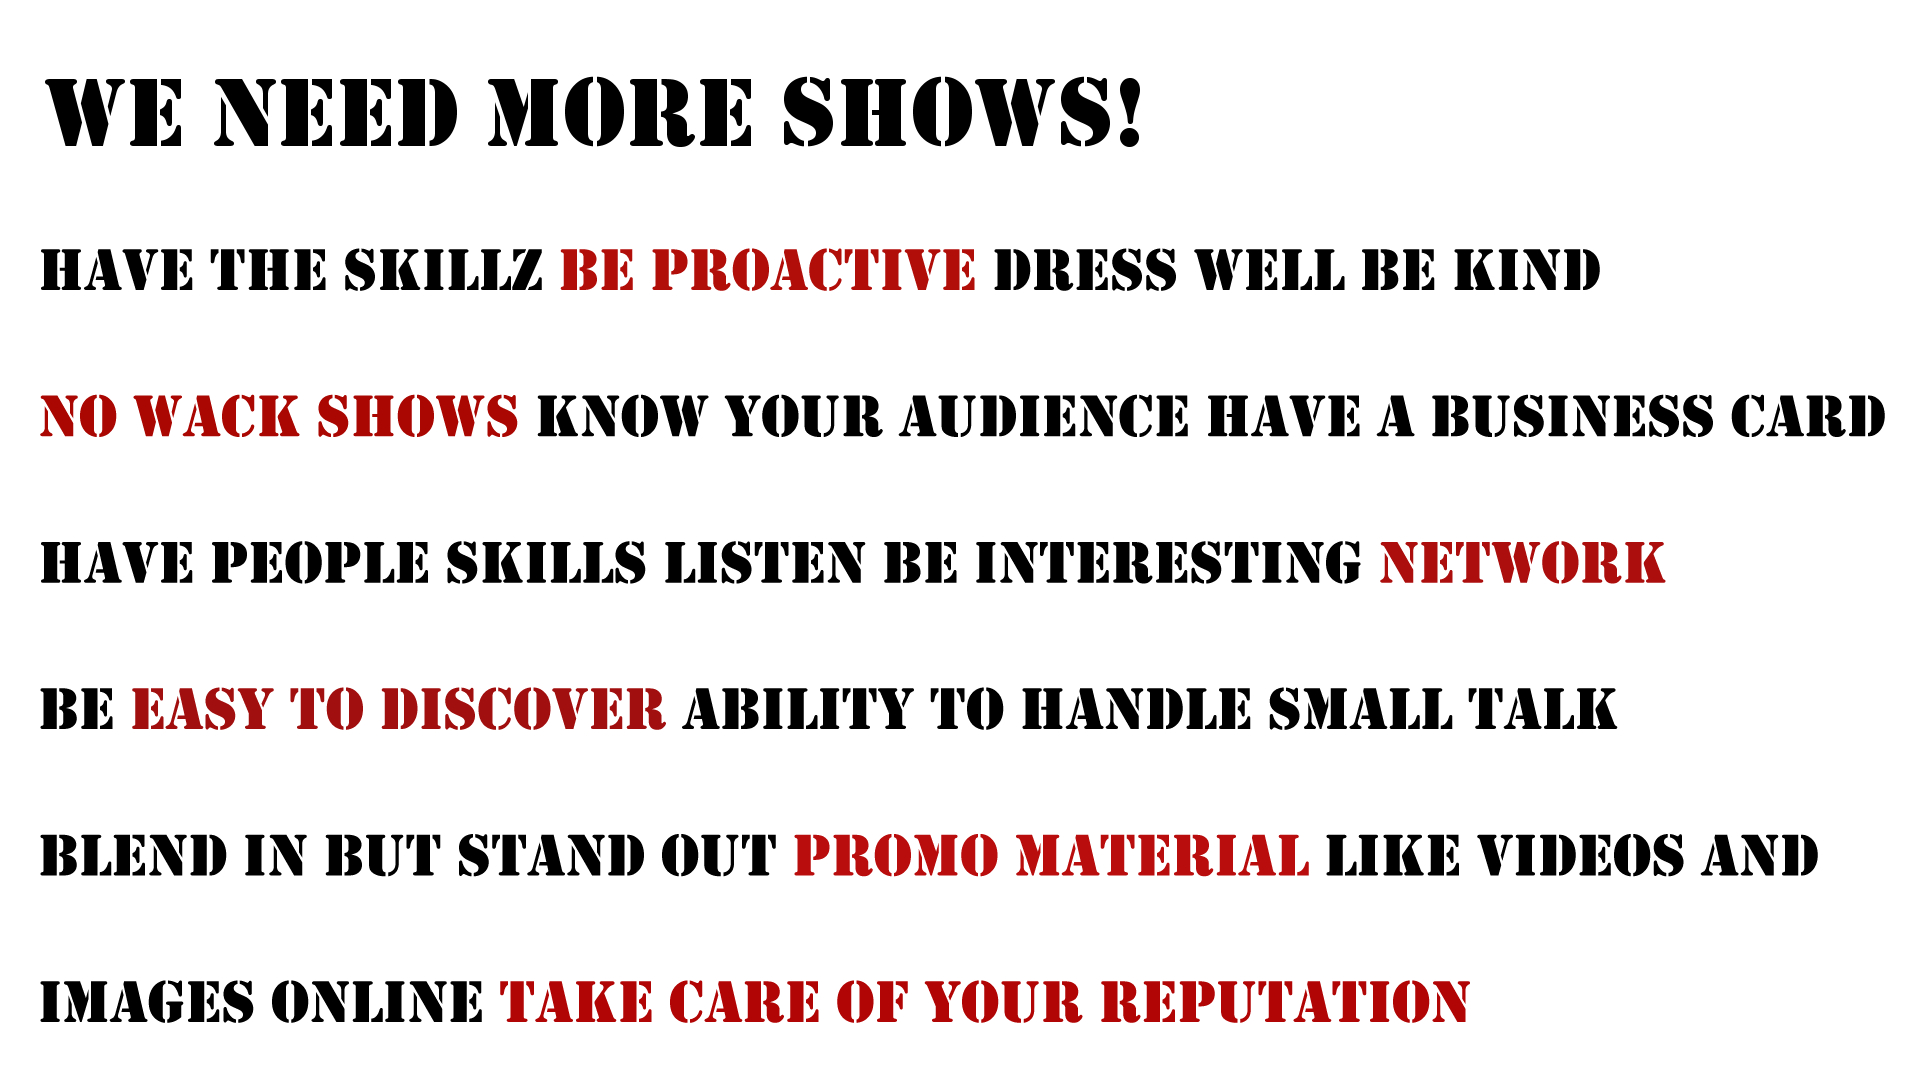 a list of important factors to book more shows